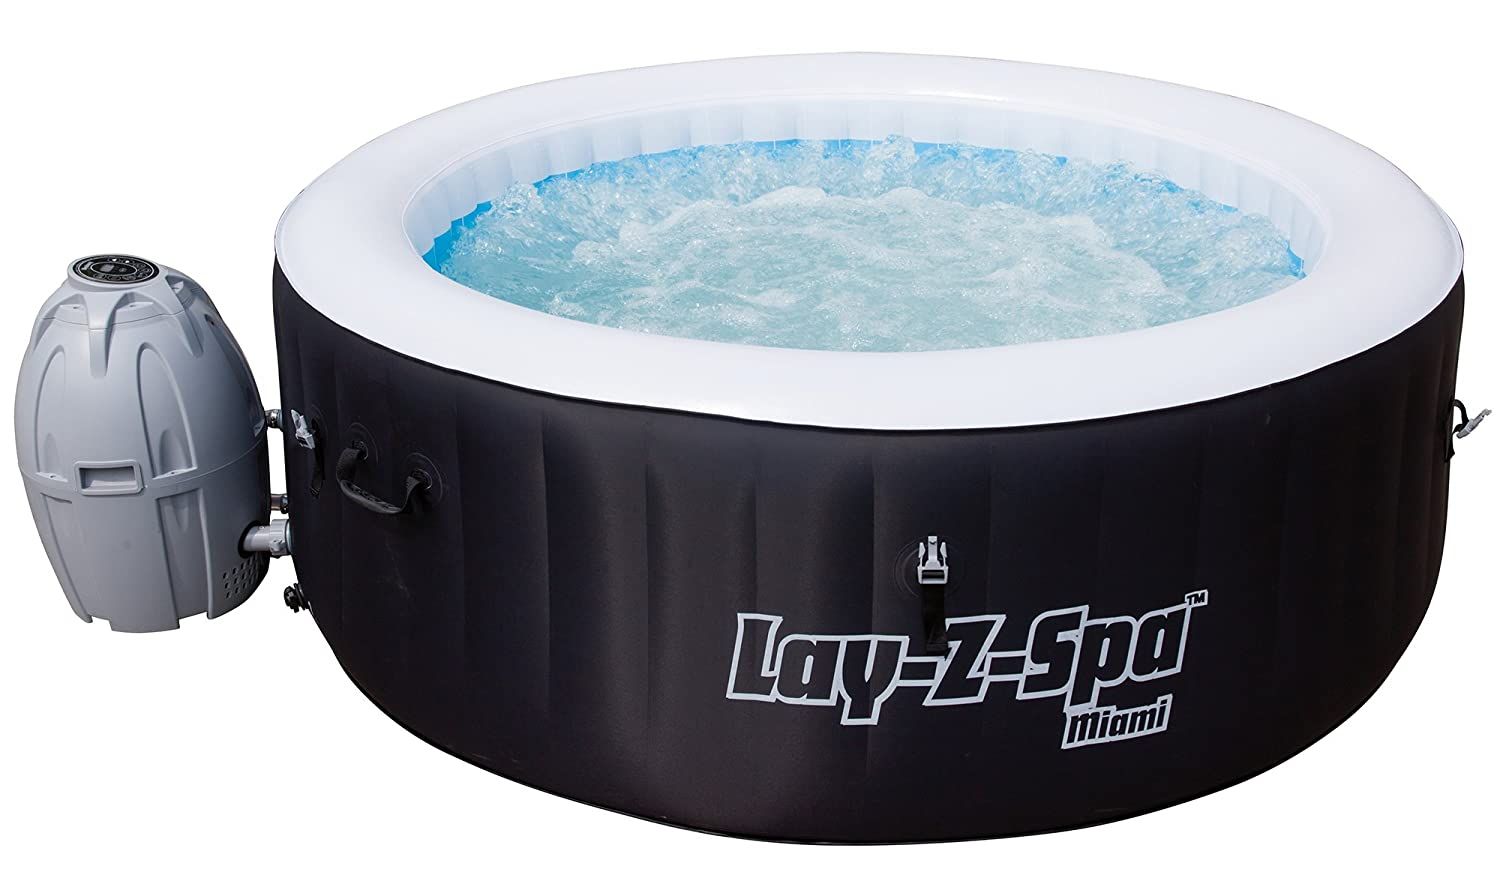 Jacuzzi Whirlpool Outdoor